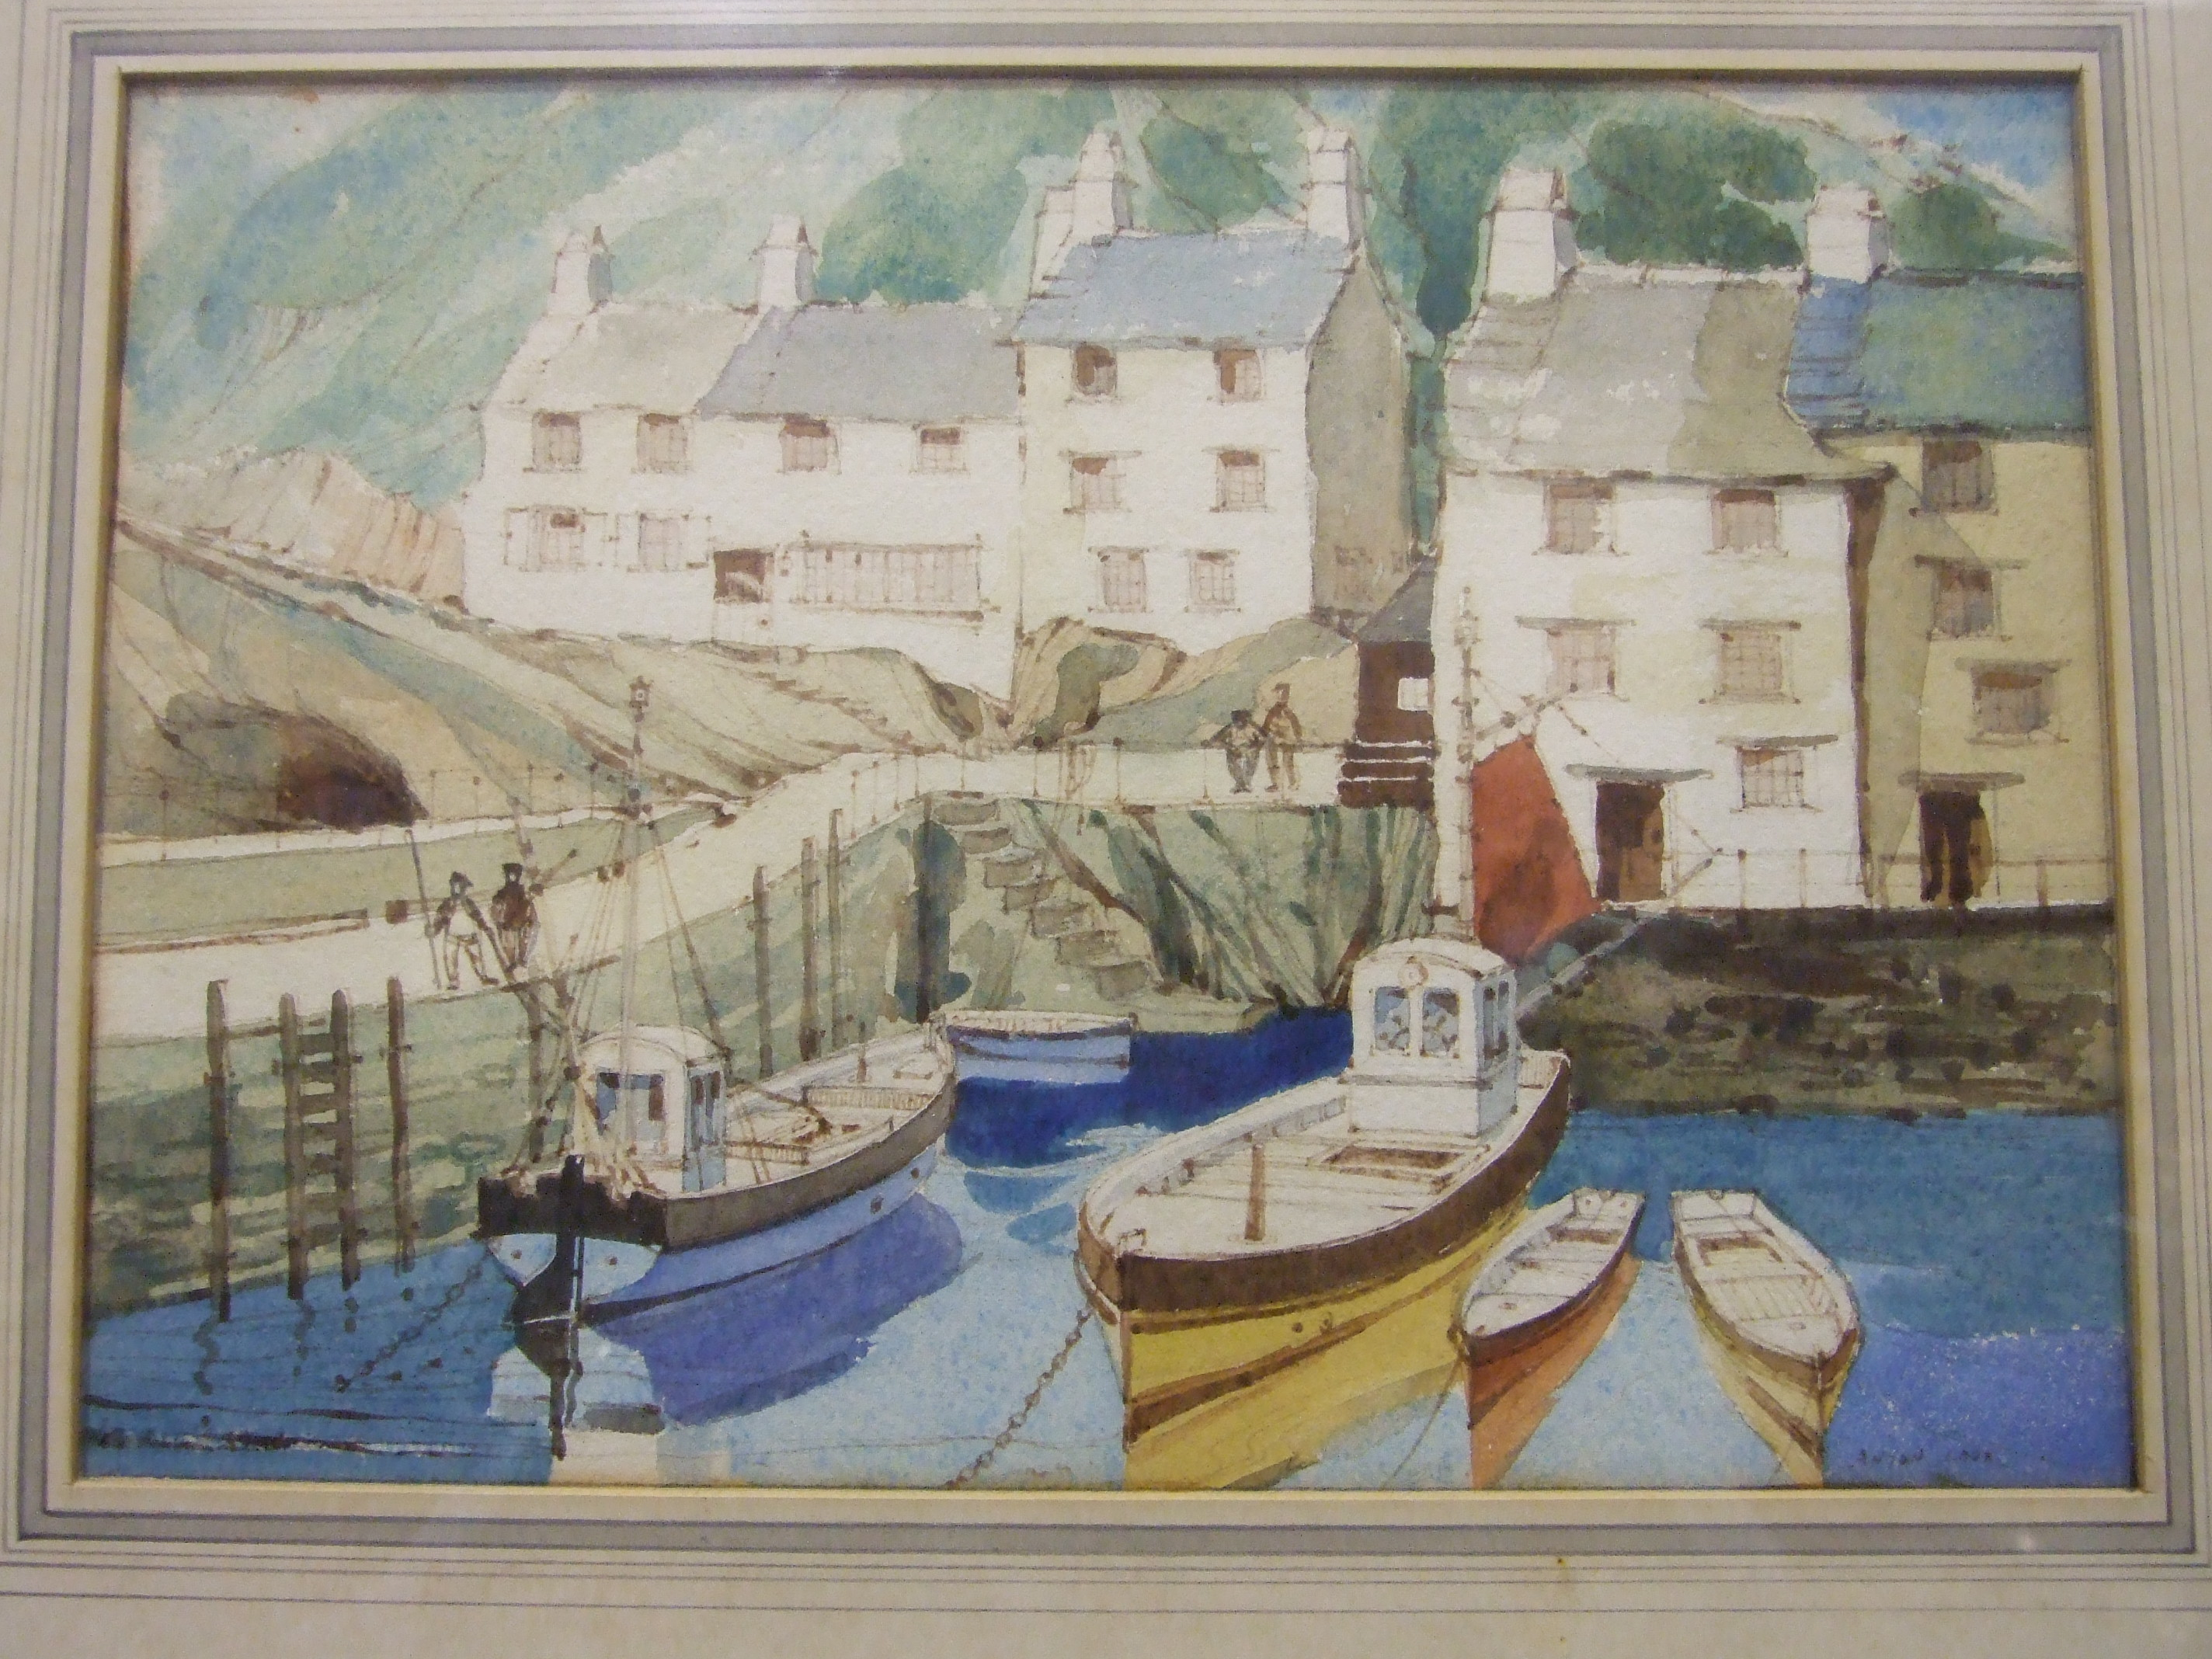 •Anyon Cook POLPERRO Signed watercolour, 18 x 25cm, together with another view of Polperro by the - Image 3 of 3